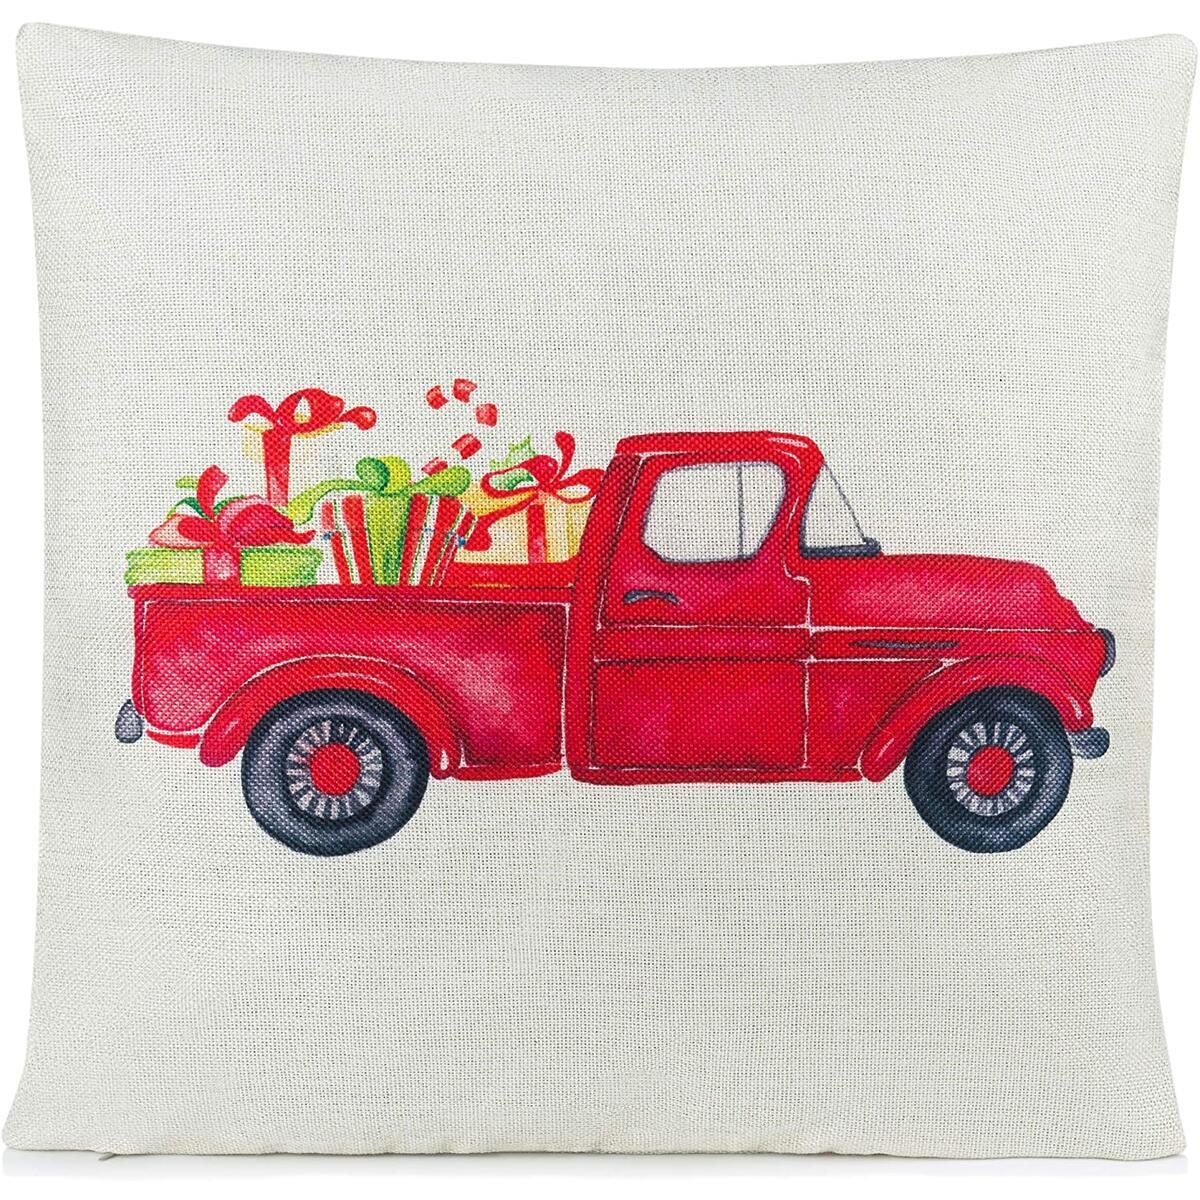 Rustic Christmas Pillow Covers | Christmas Throw Pillows | Farmhouse Christmas Decor | Christmas Pillow Covers | Rustic Holiday Decorations 18 x 18 Inch Red Truck Christmas Pillow Cover Decor